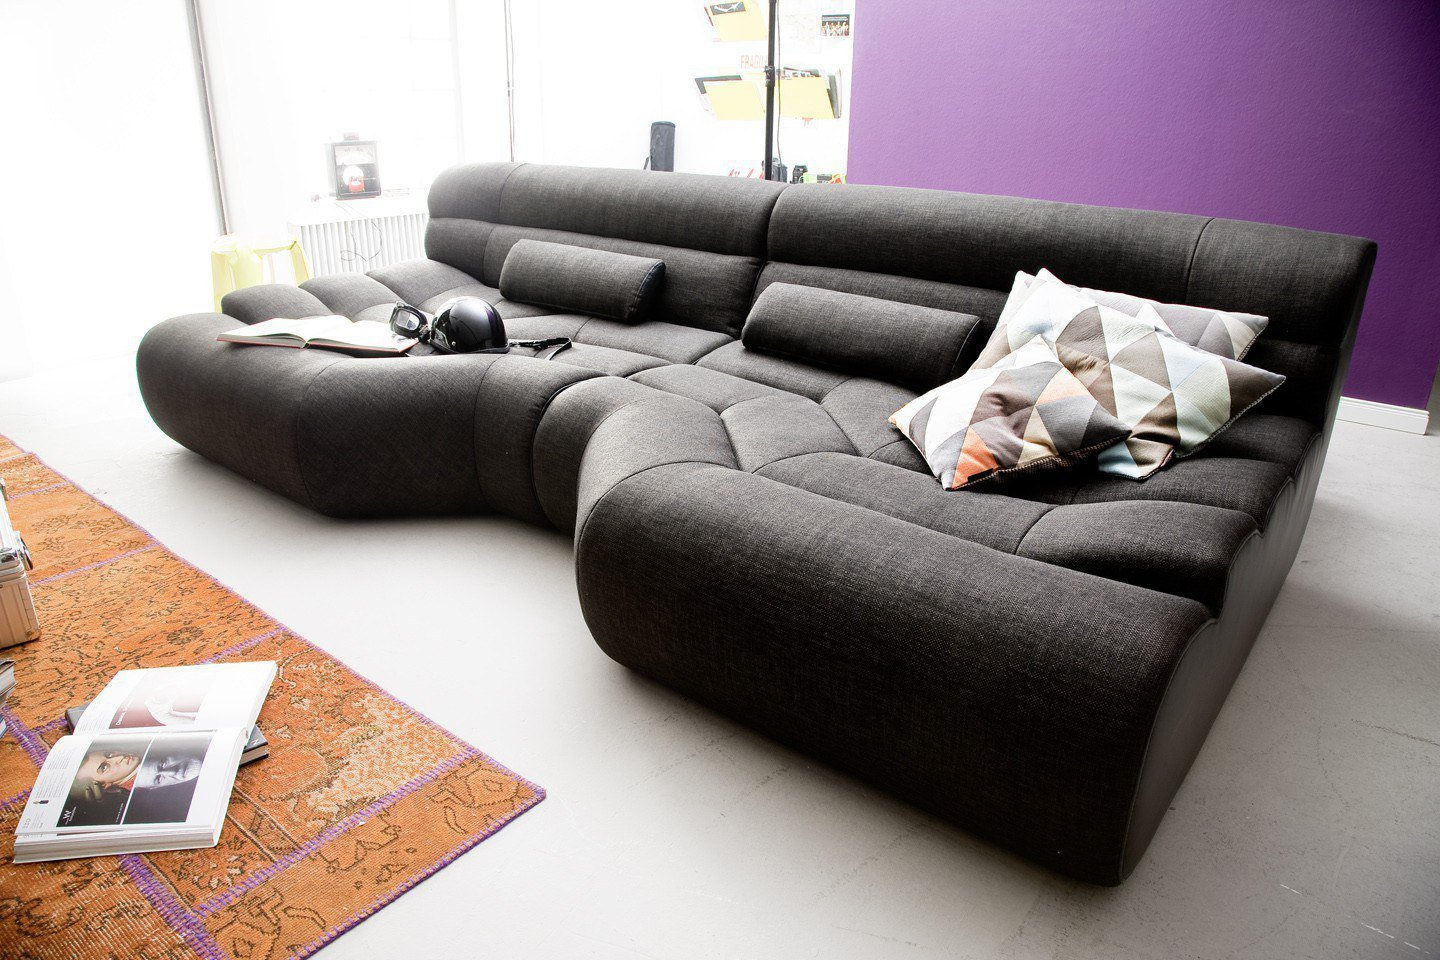 Big Sofa Online Shop New Look Möbel Elements Sofa Schwarz Möbel Letz Ihr